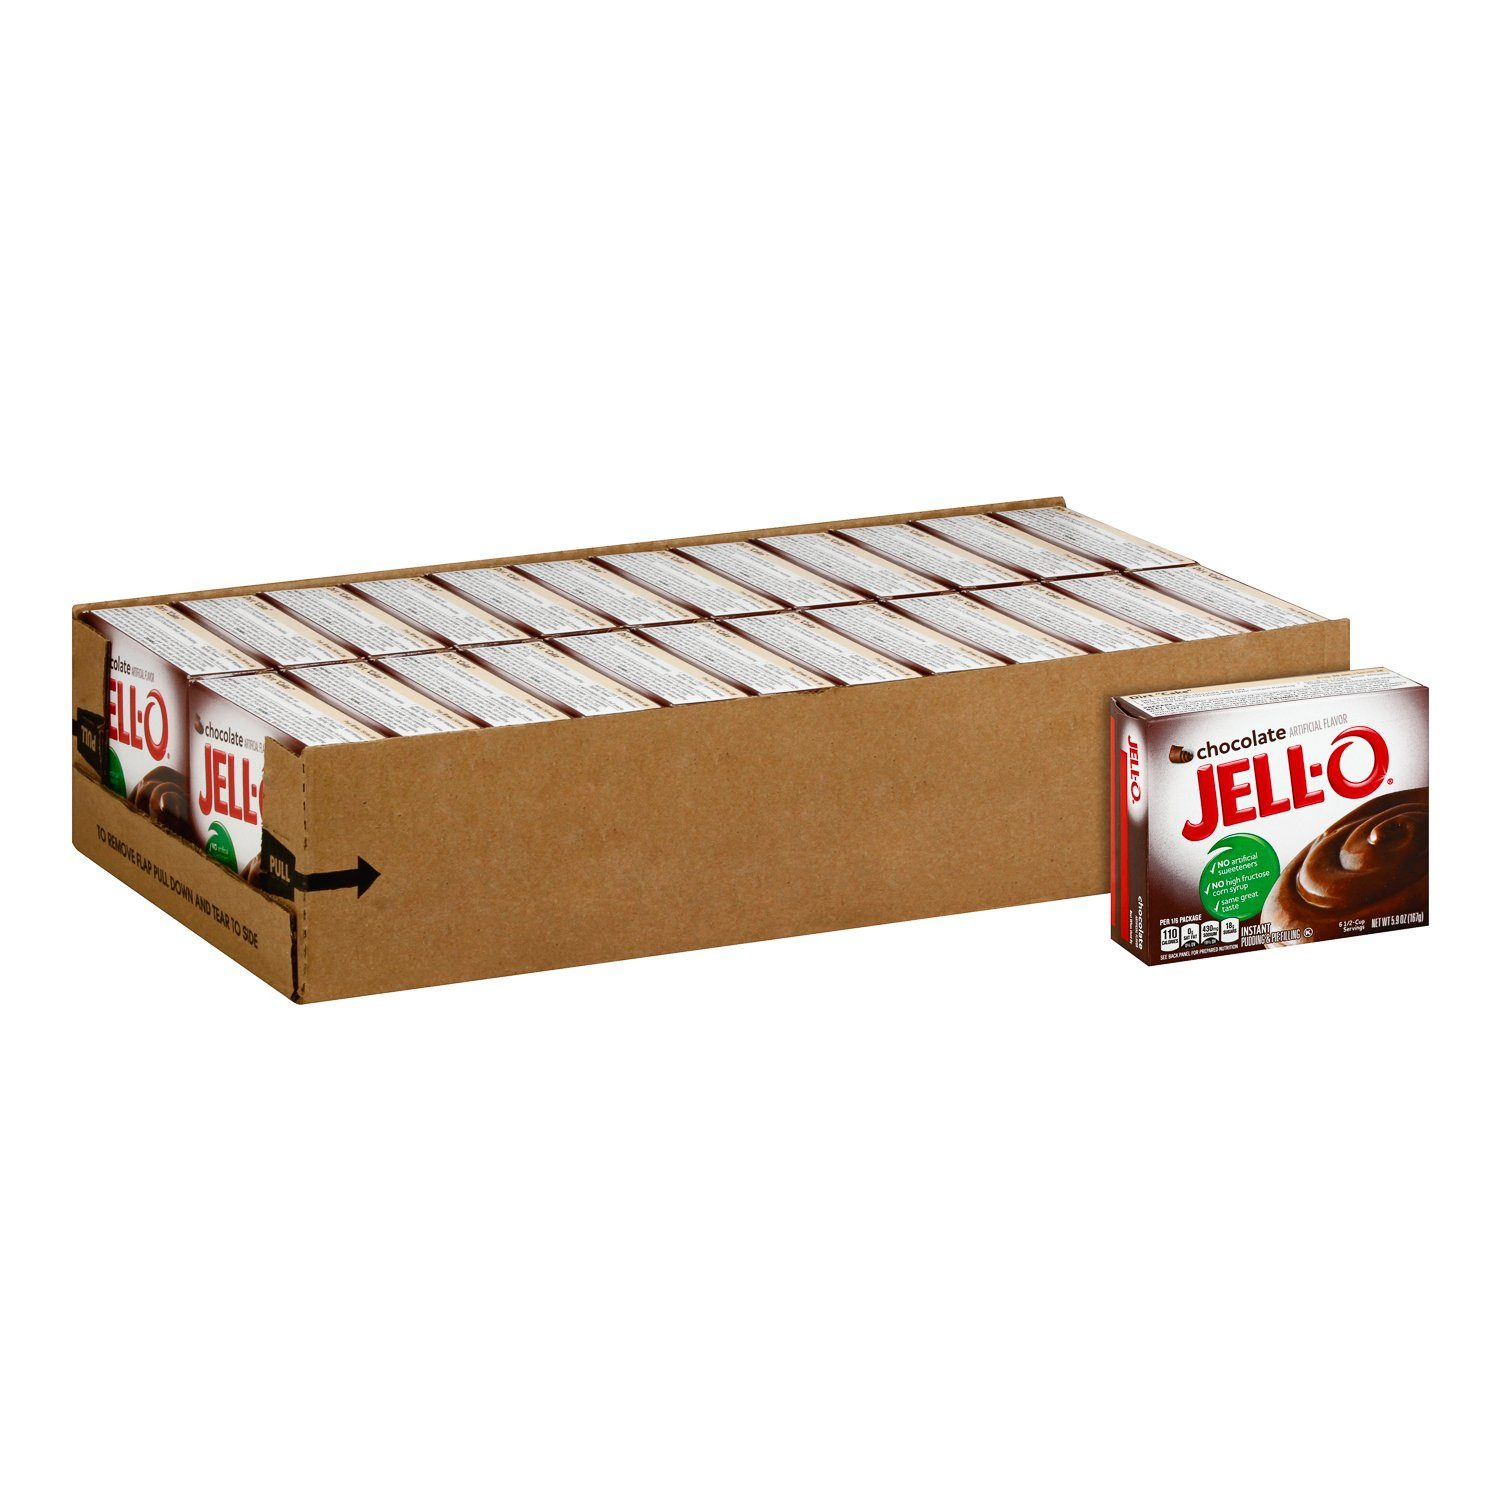 Jell-O Instant Pudding & Pie Filling Mixes Jell-O Chocolate 5.9 Oz-24 Count